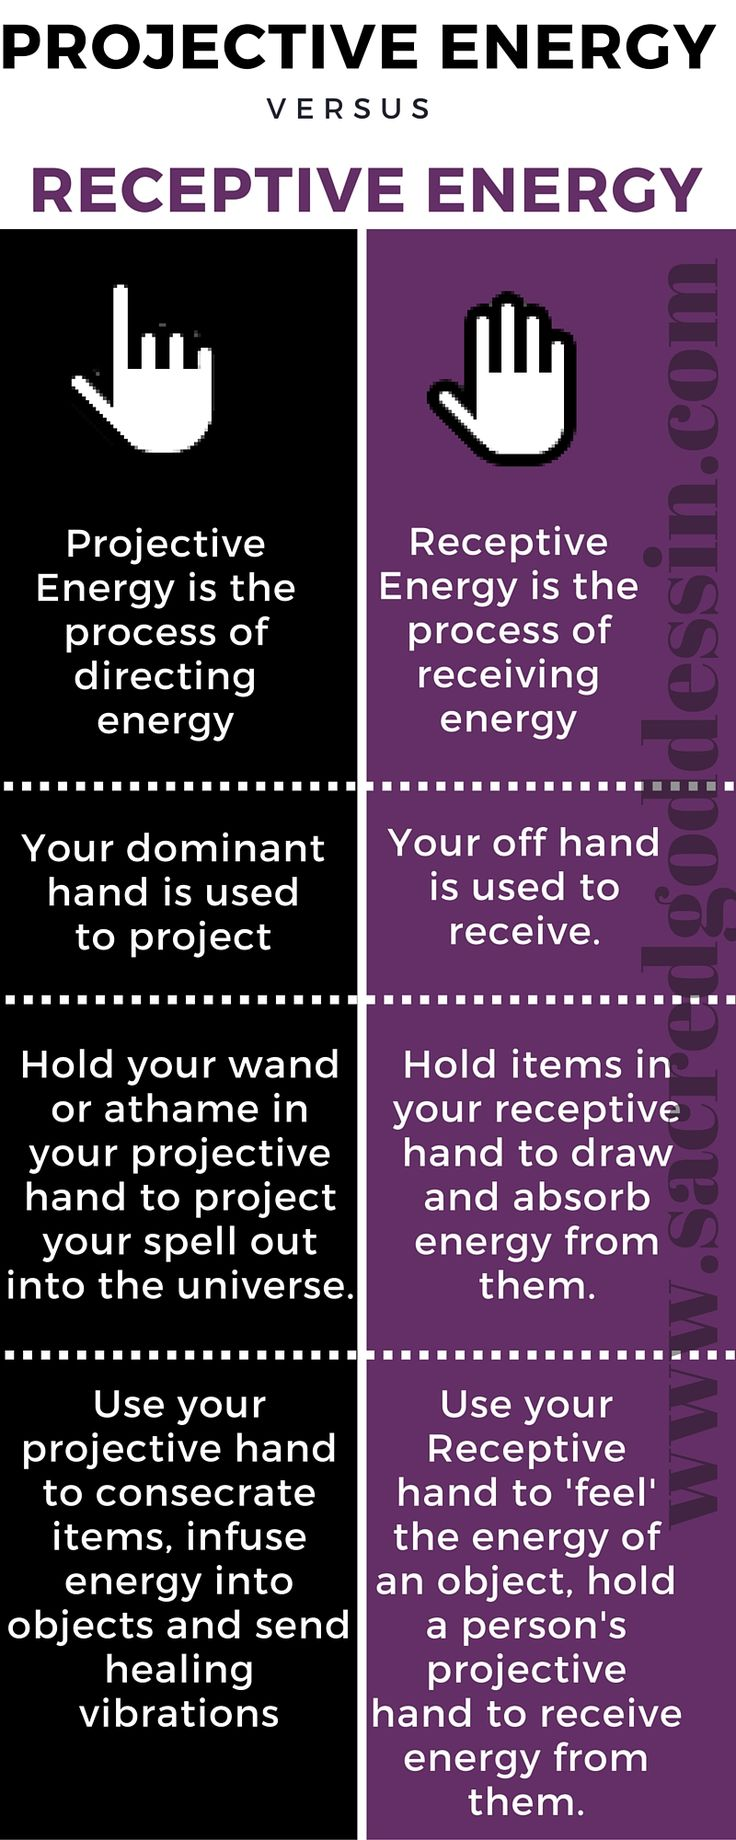 Wicca for Beginners - Projective Energy vs Receptive Energy for spells and other magick work. Follow us on pinterest for more great infographs! Click the pic to visit our website.- Pinned by The Mystic's Emporium on Etsy